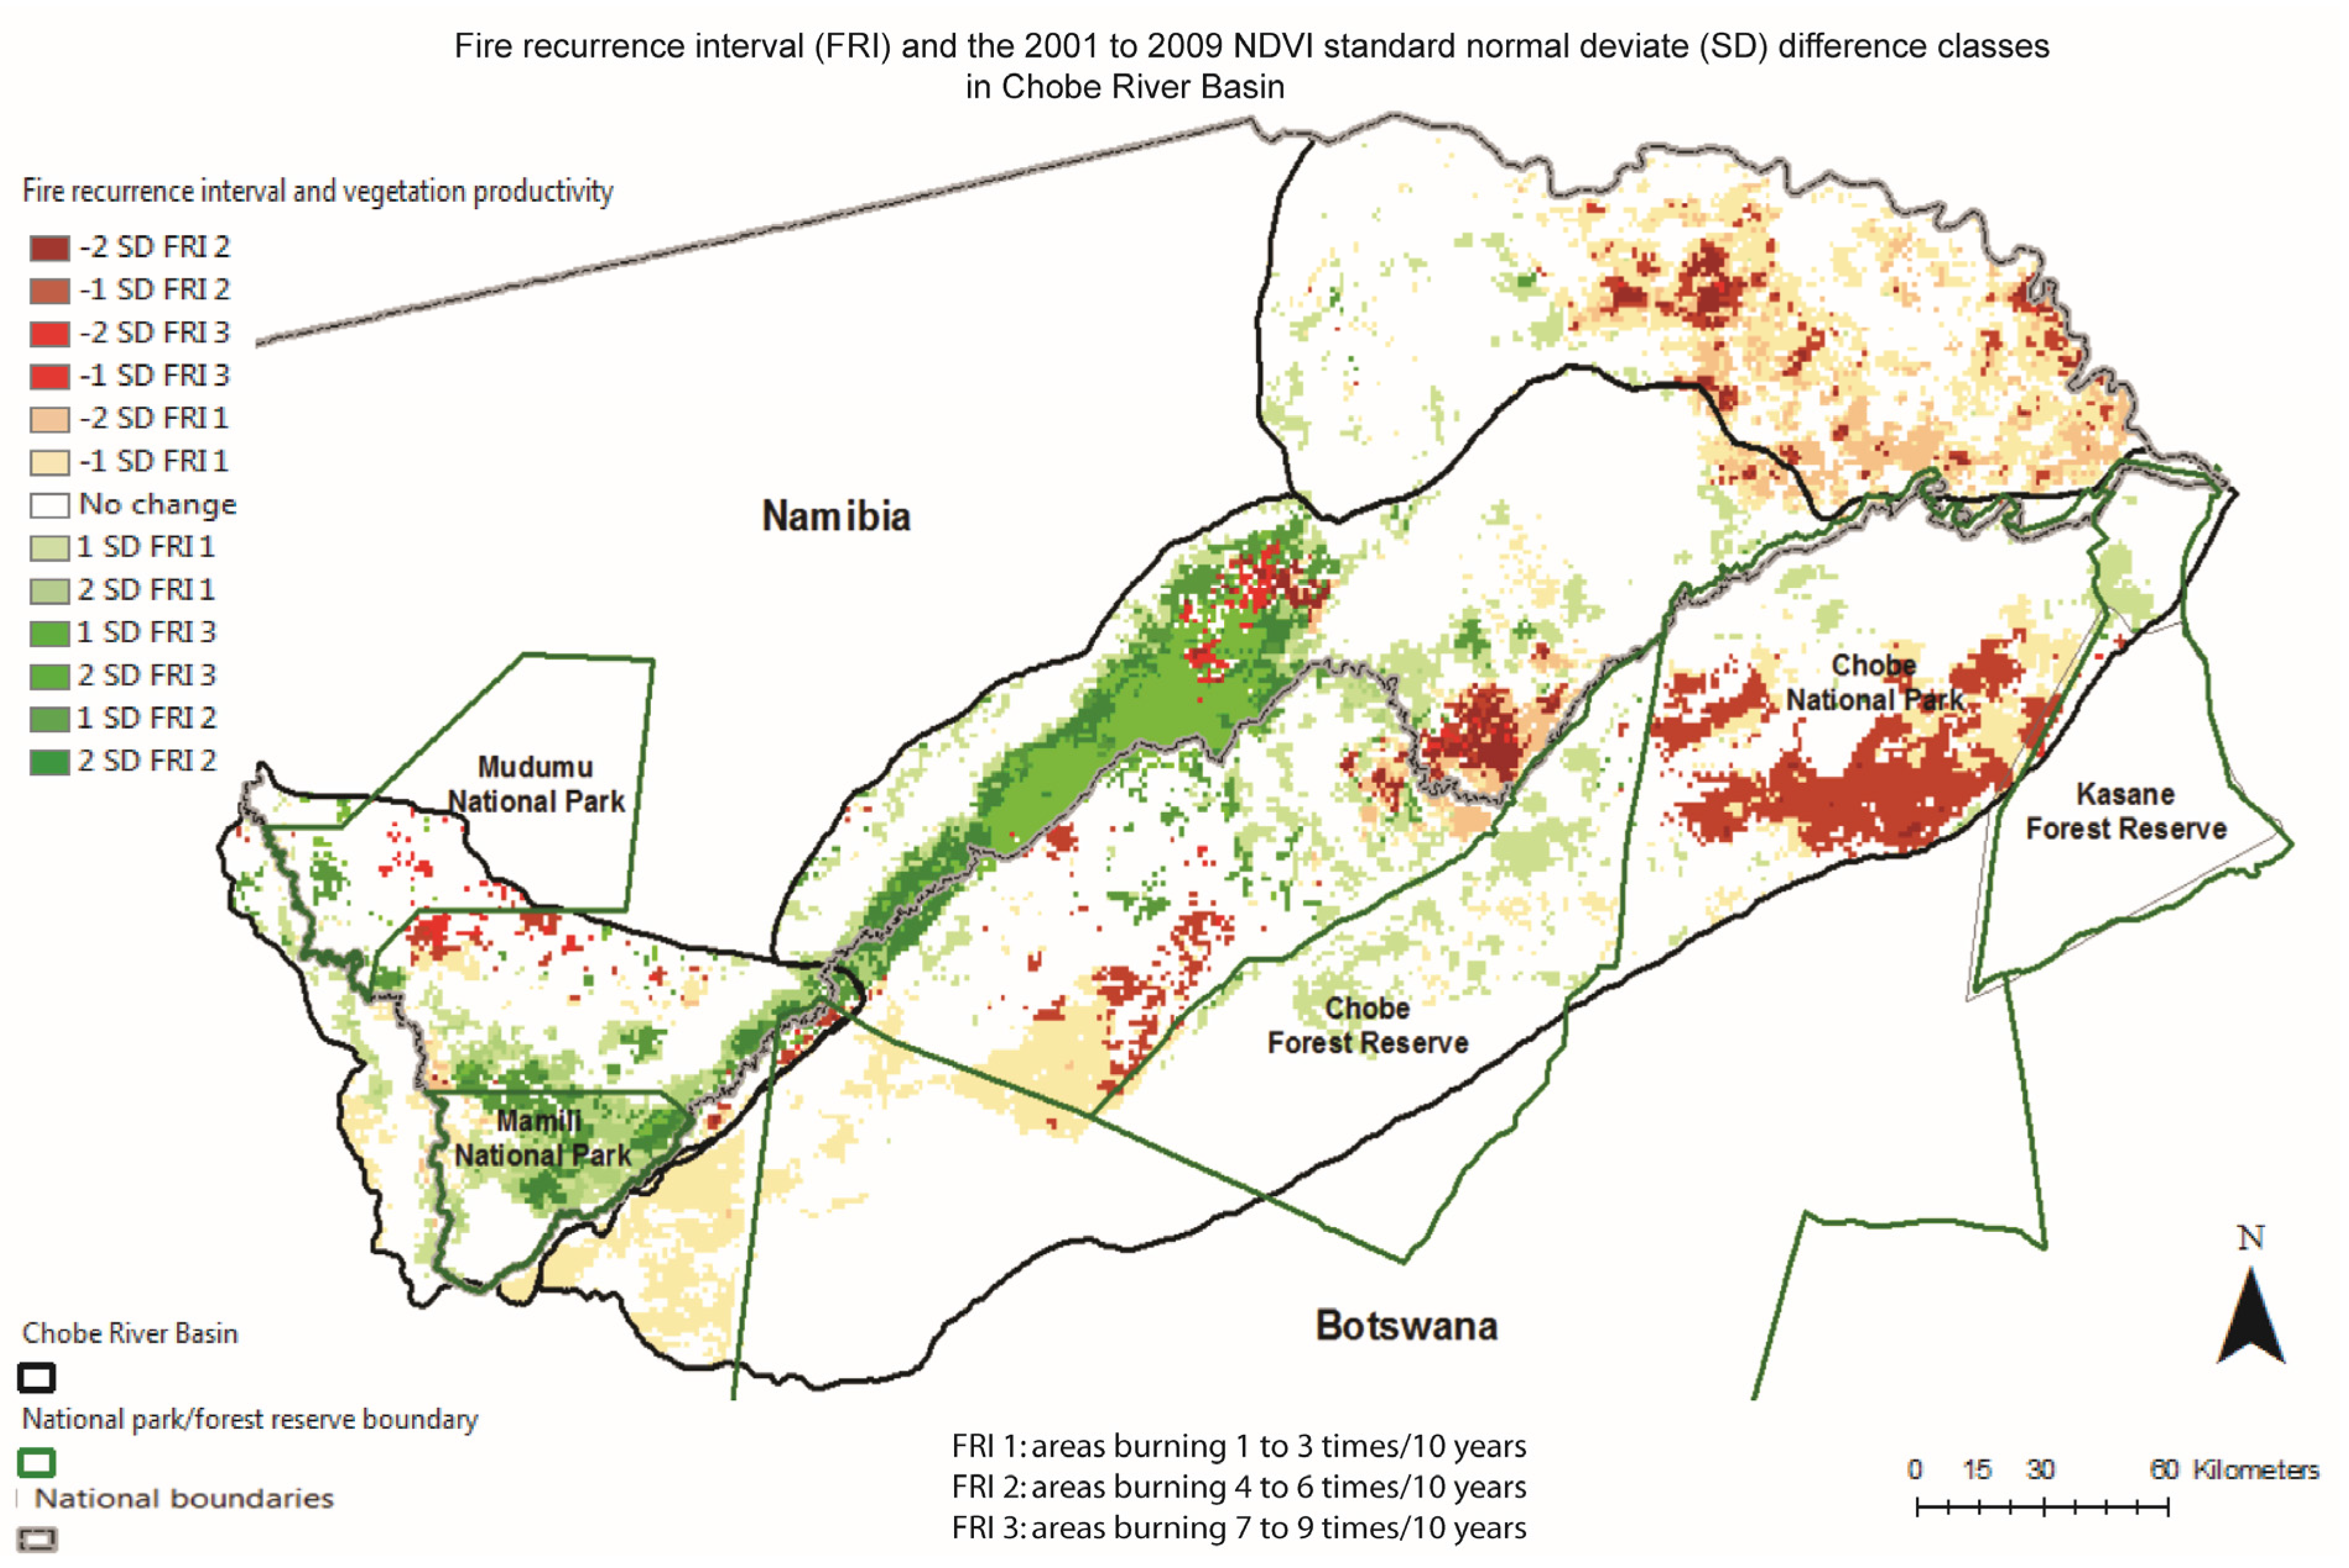 Land Free FullText SpatioTemporal Analysis of Vegetation